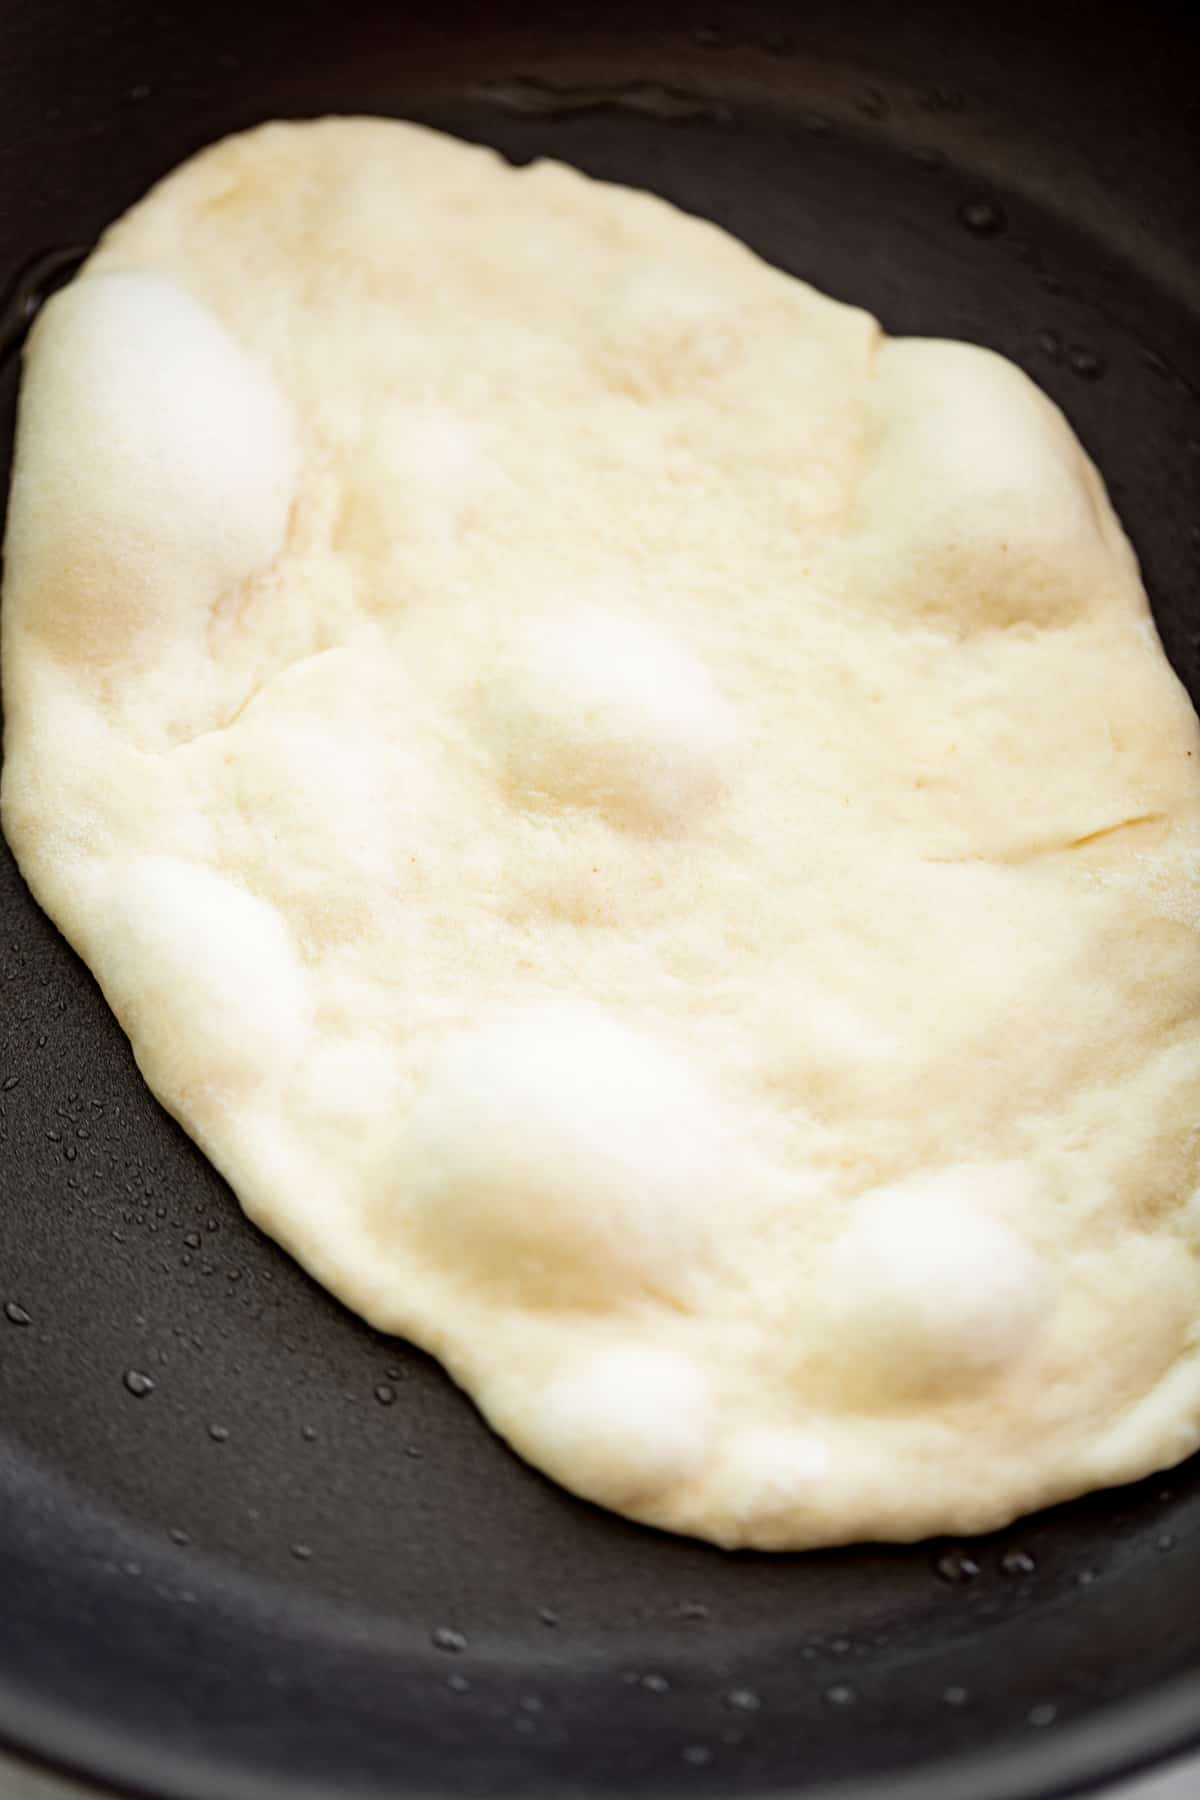 Cooking a garlic naan bread in a black skillet with a light coating of oil | cafedelites.com